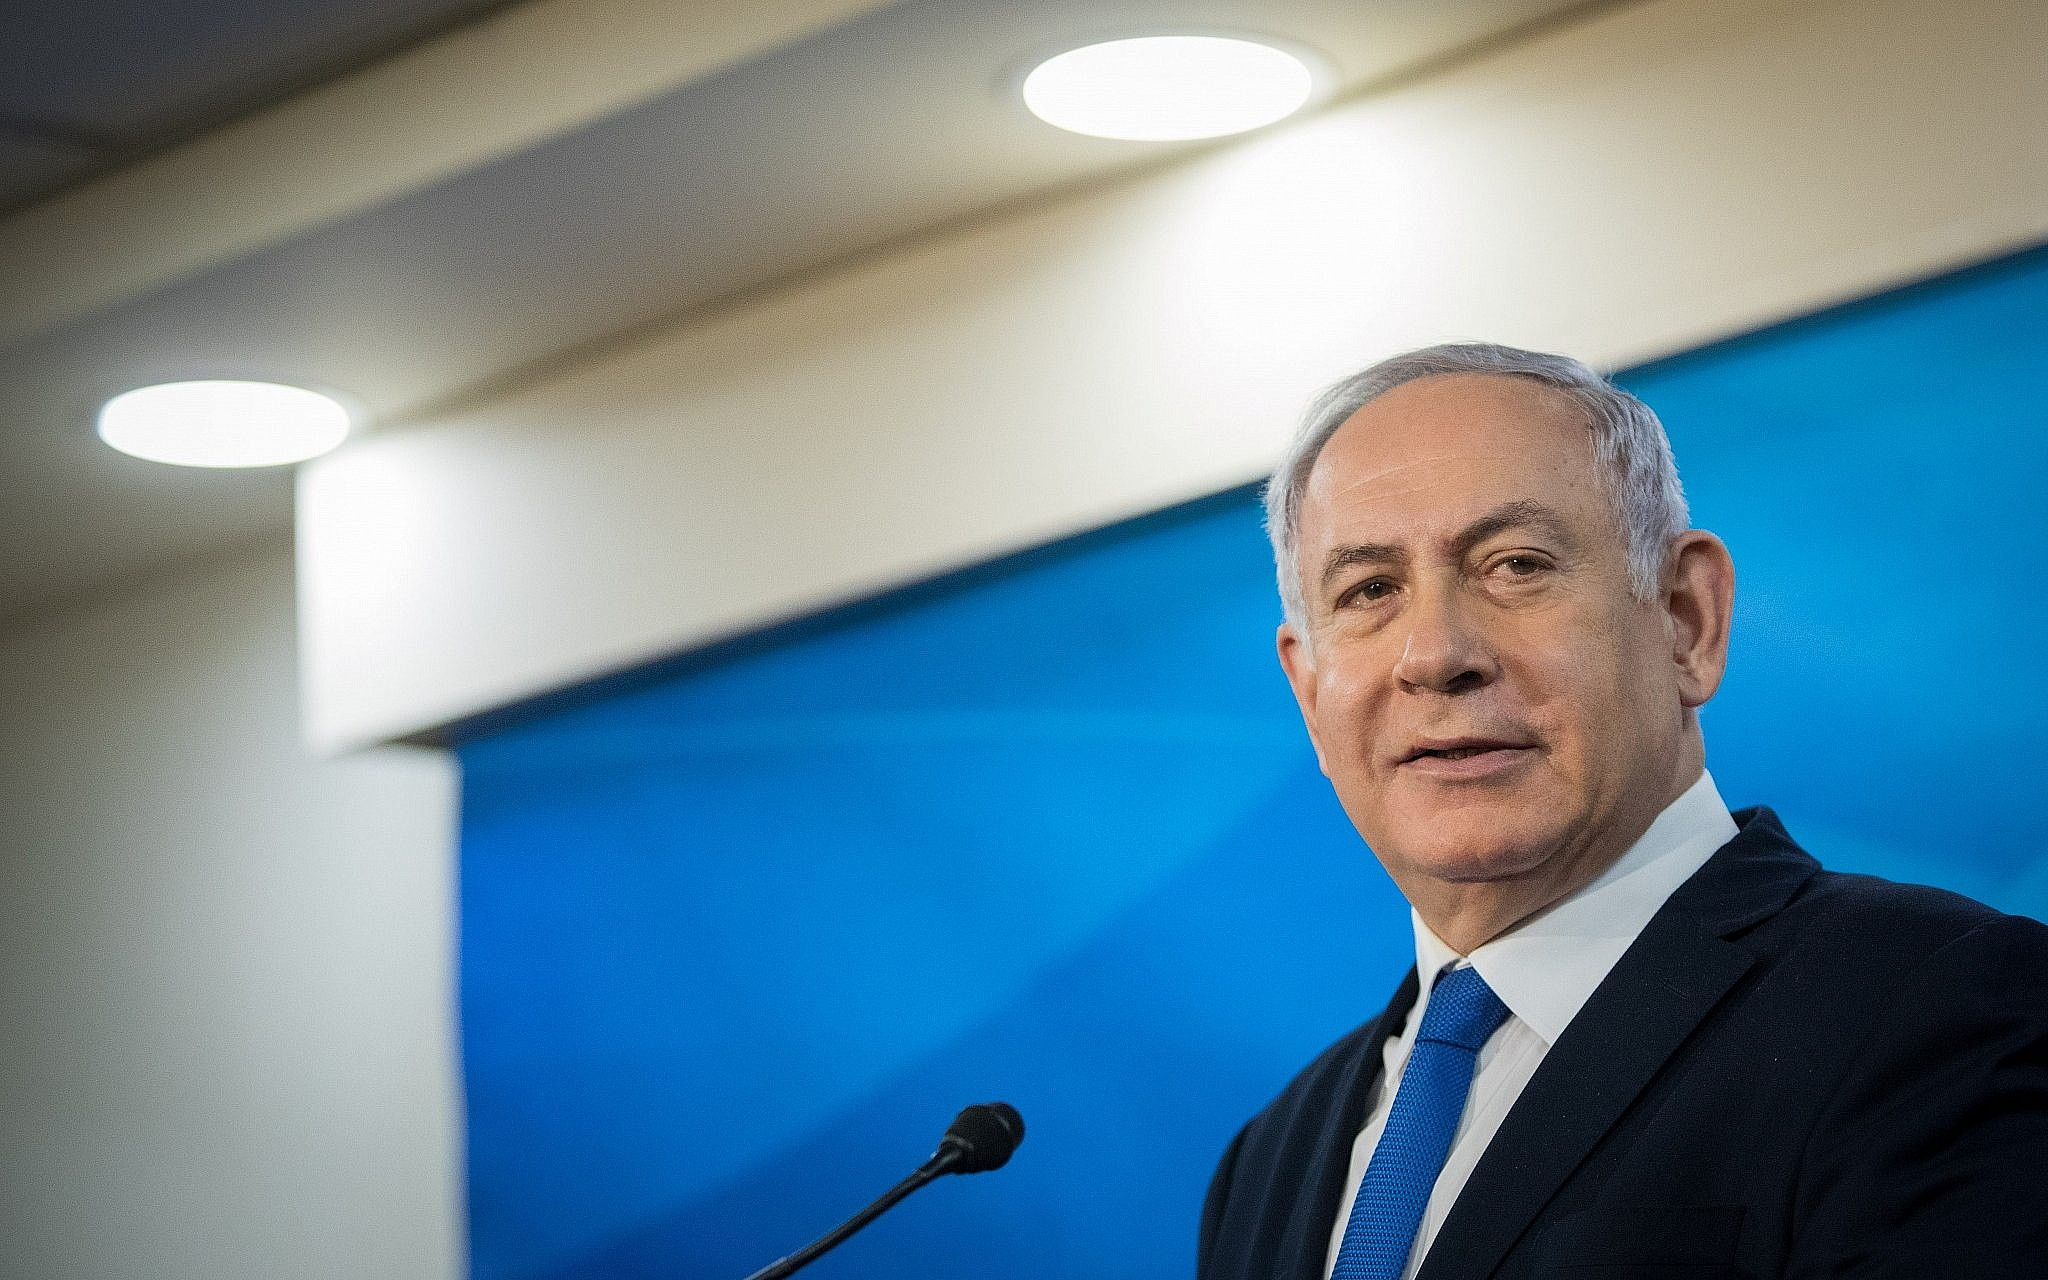 Netanyahu speaks against Lapid-Gantz party 'they will rely on Arab parties'